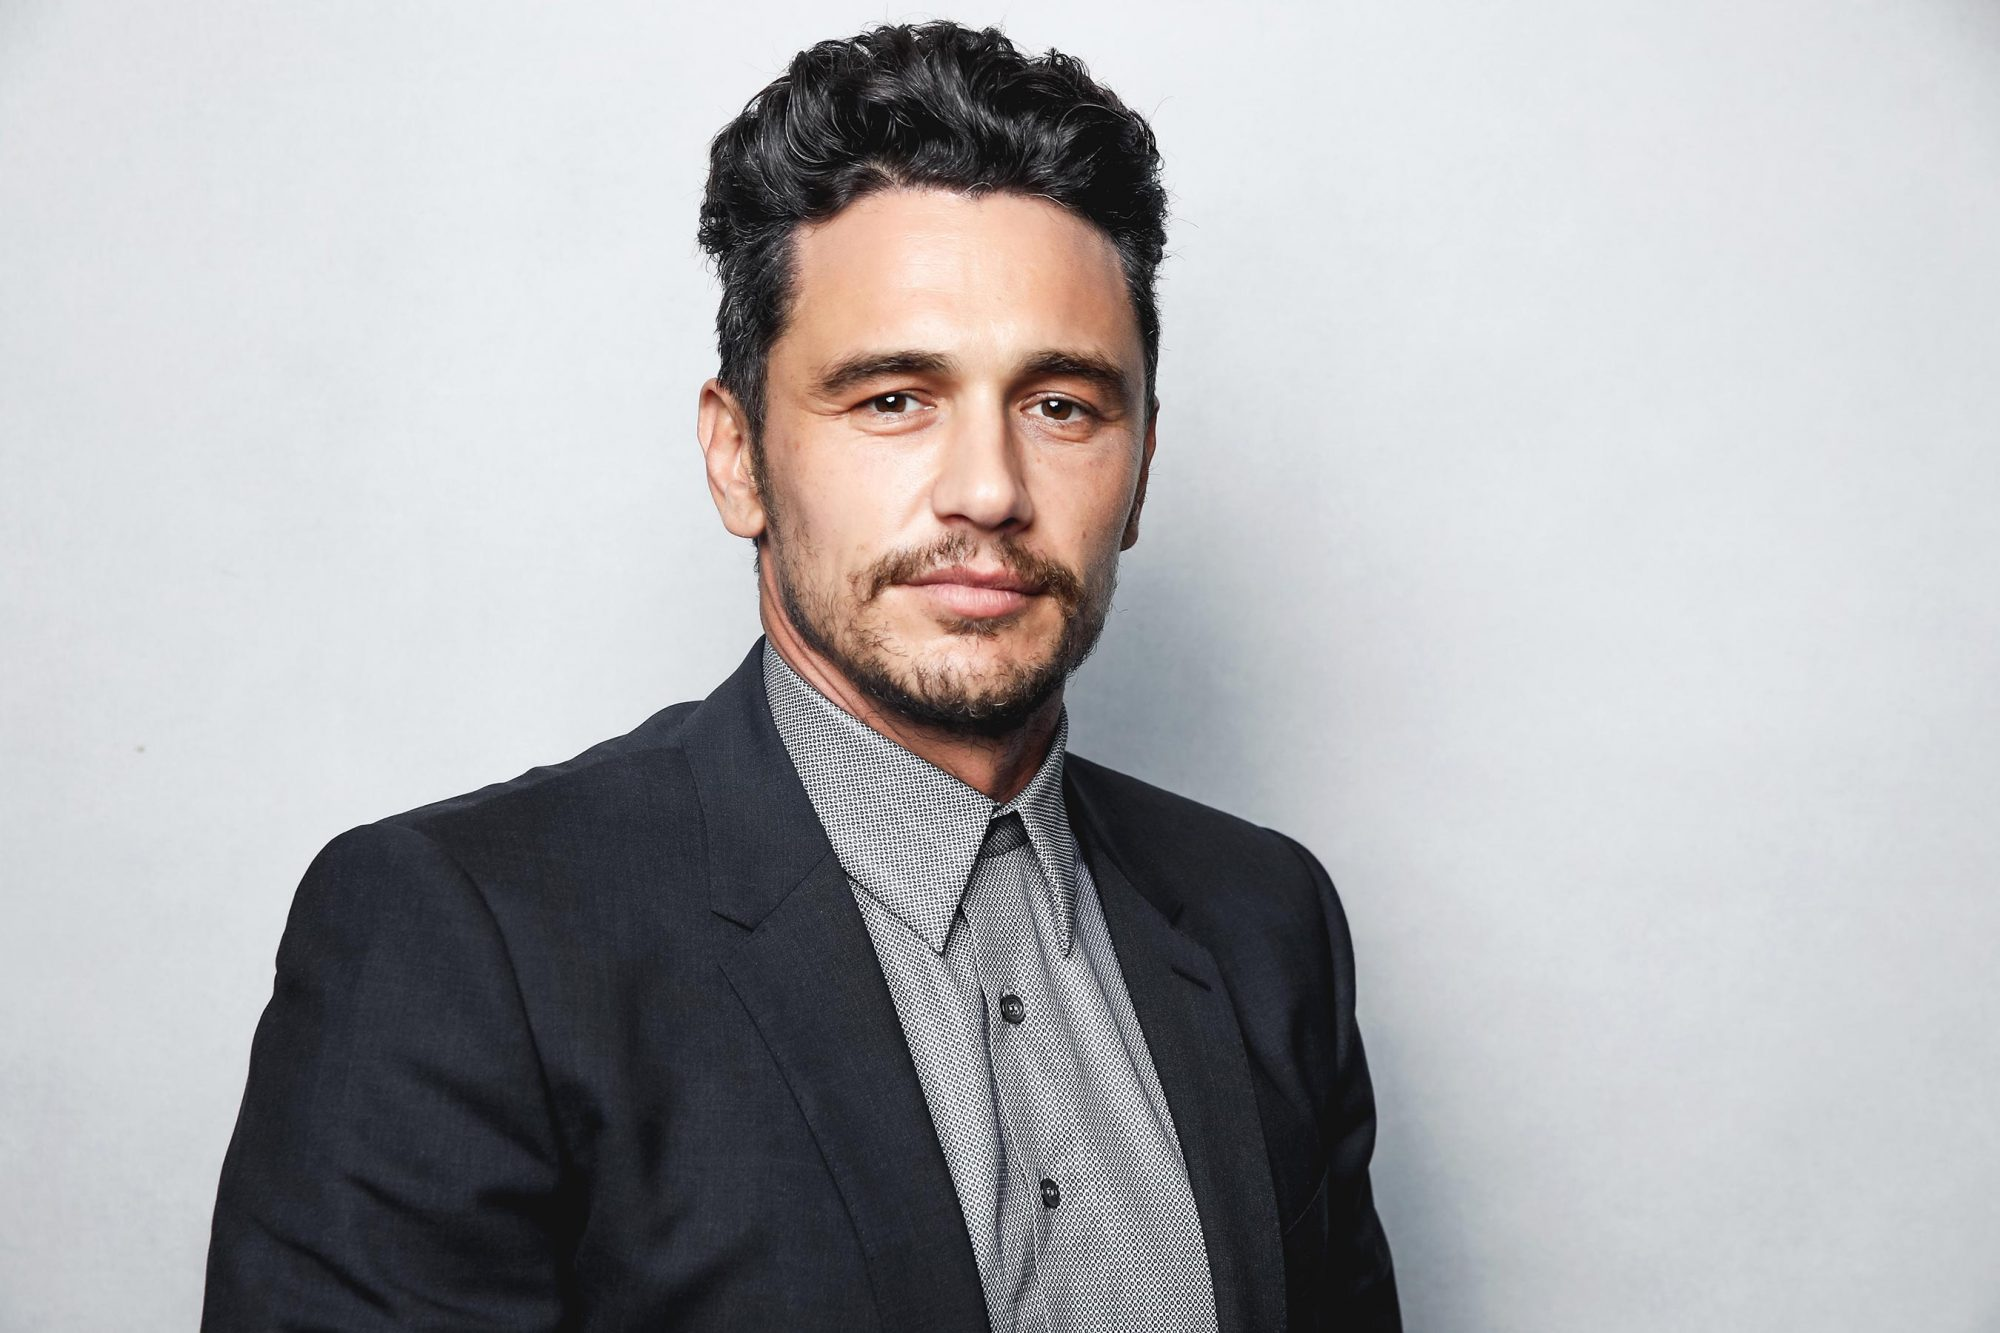 James Franco S 40 Inside His Life Since Sexual Misconduct Scandal People Com